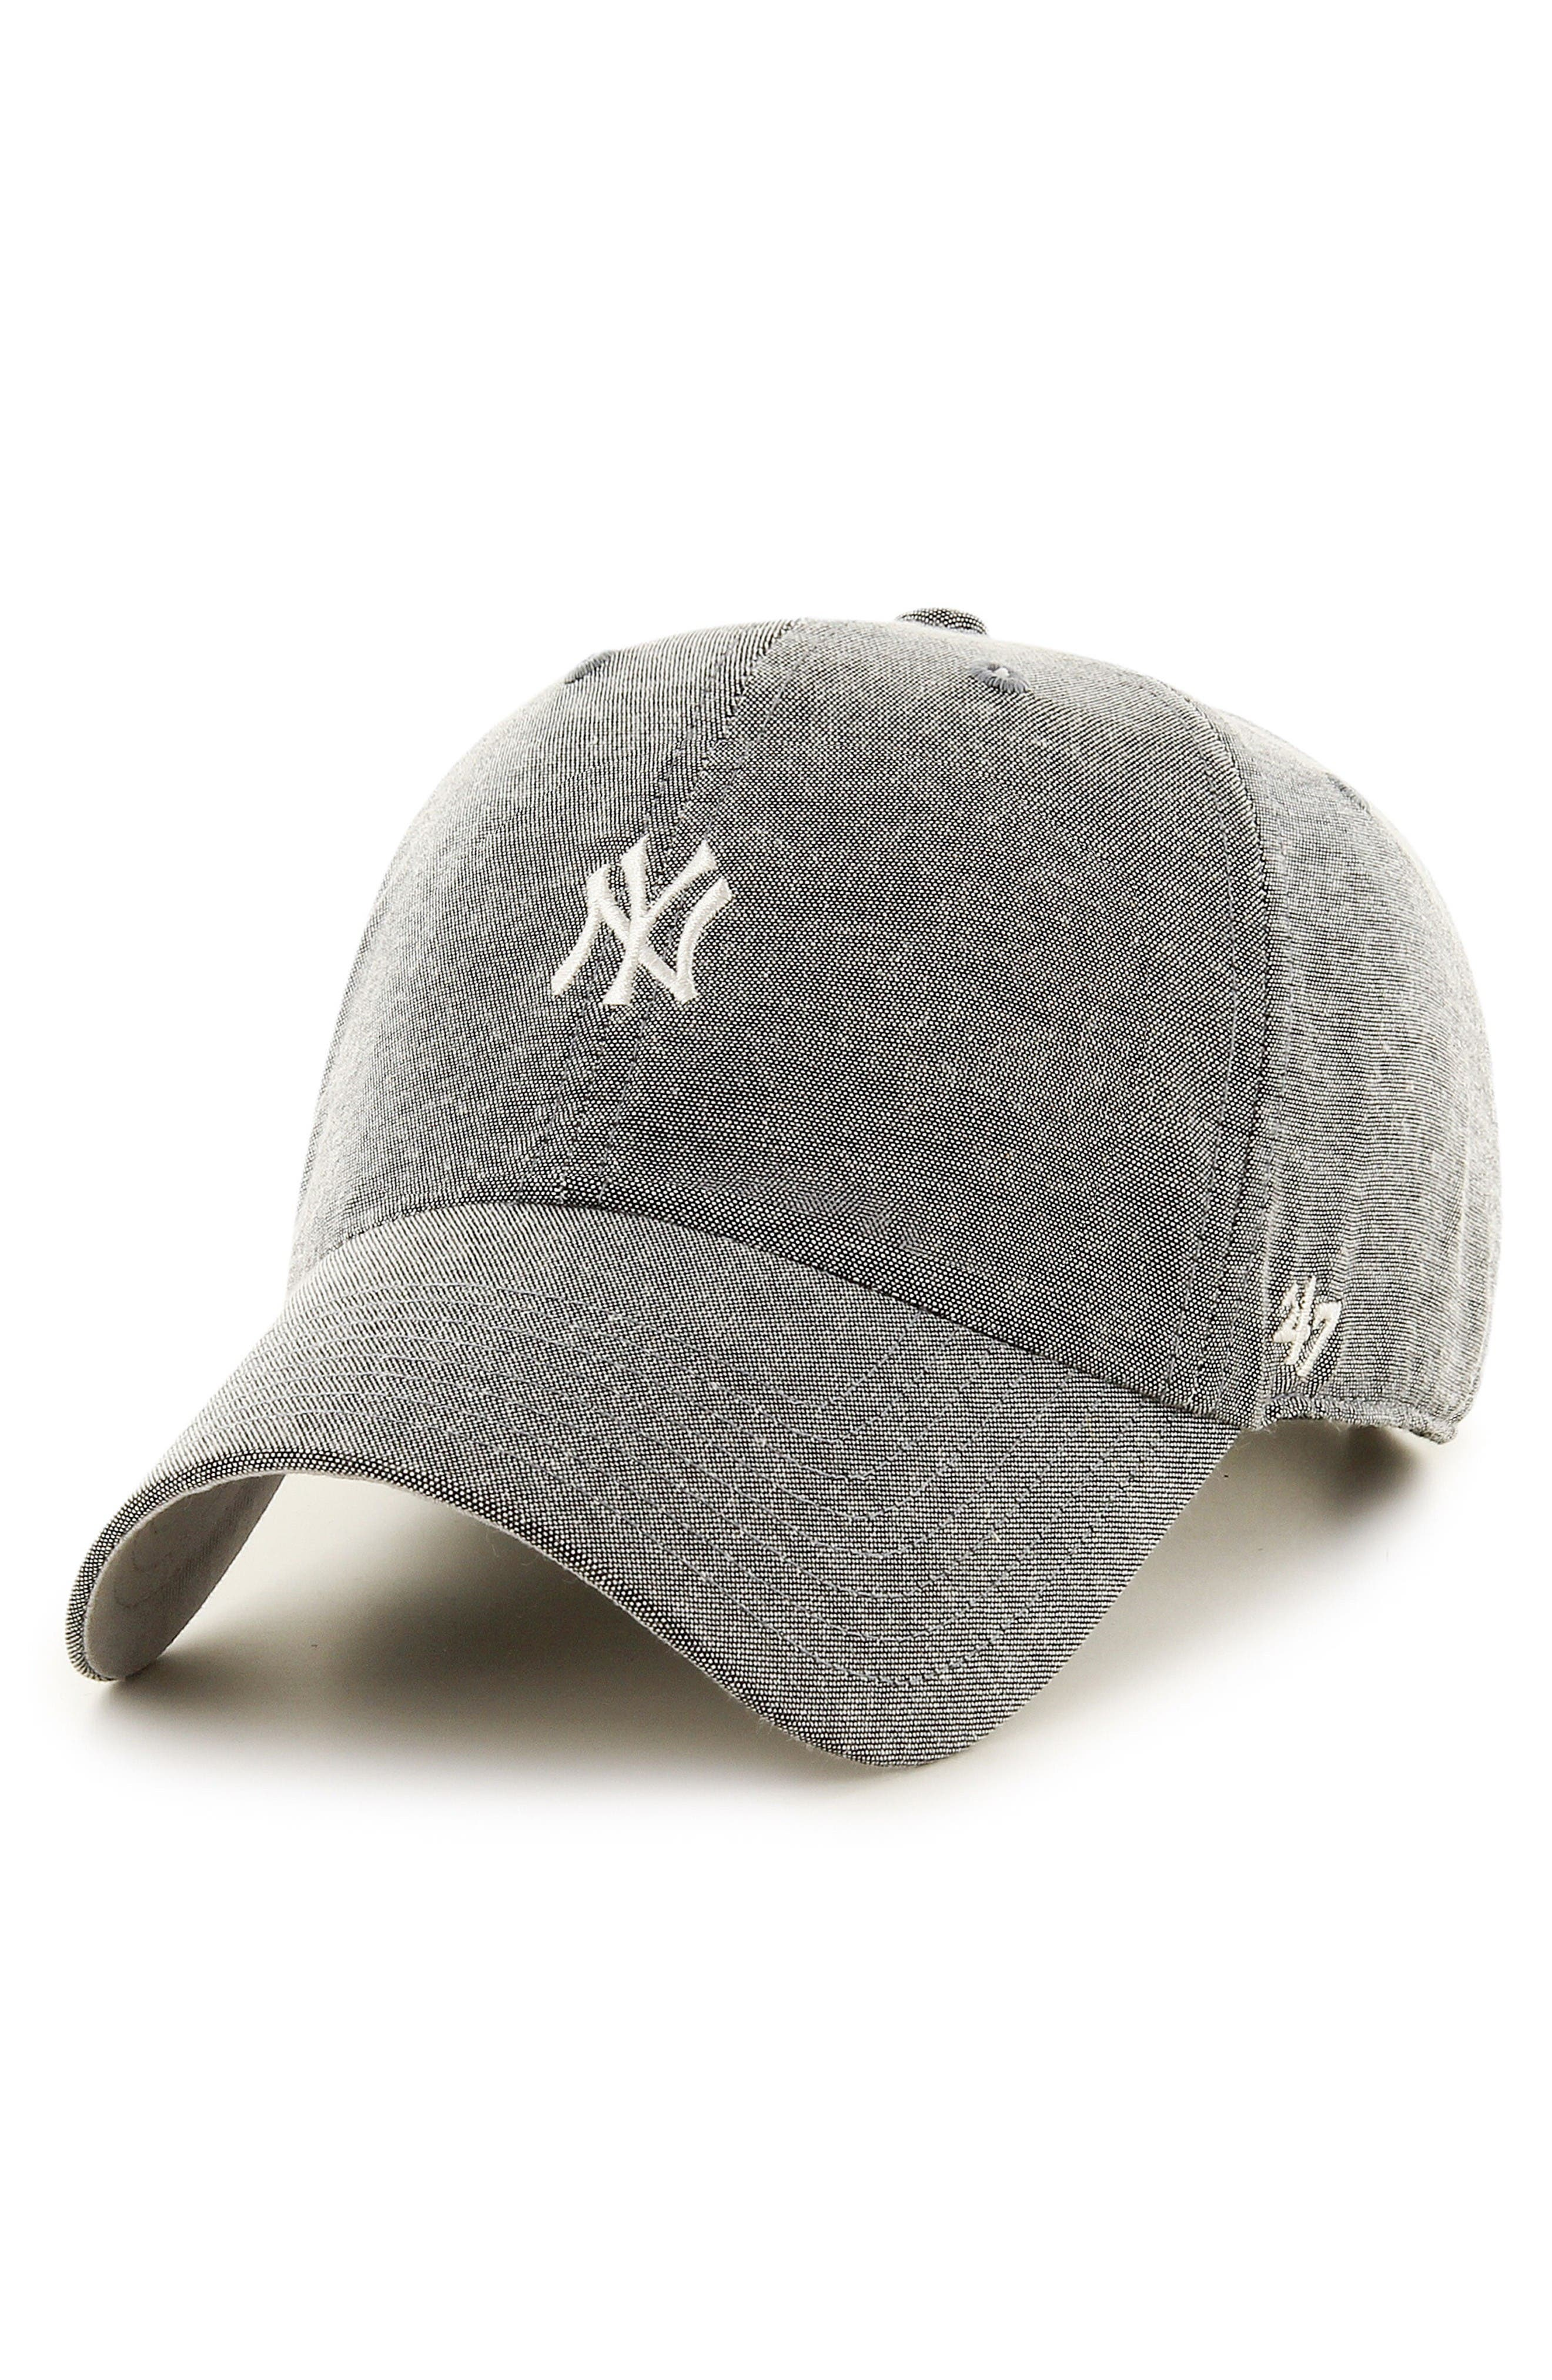 '47 Monument Salute Clean Up NY Yankees Baseball Cap